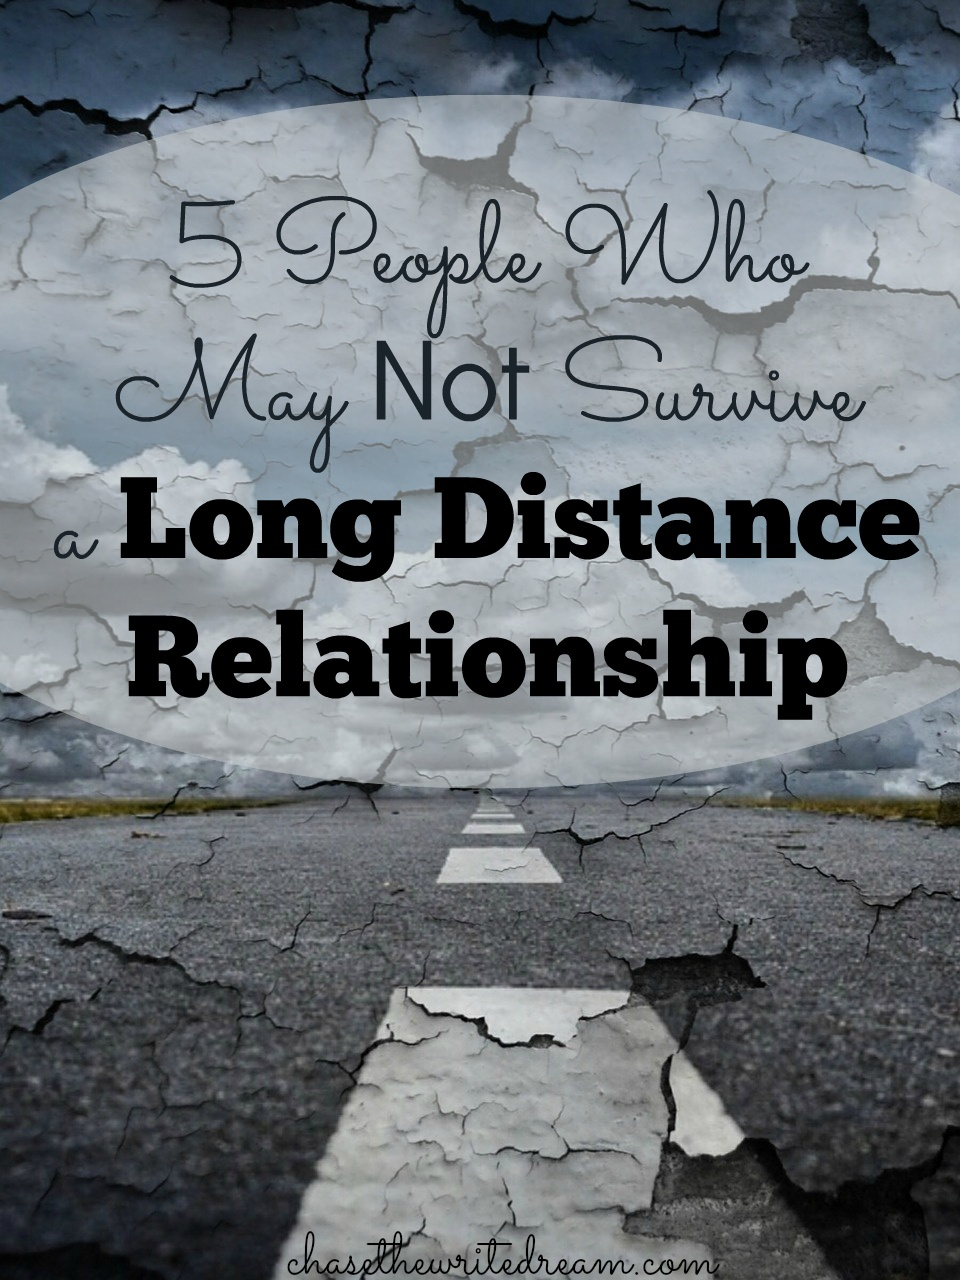 Long distance internet dating